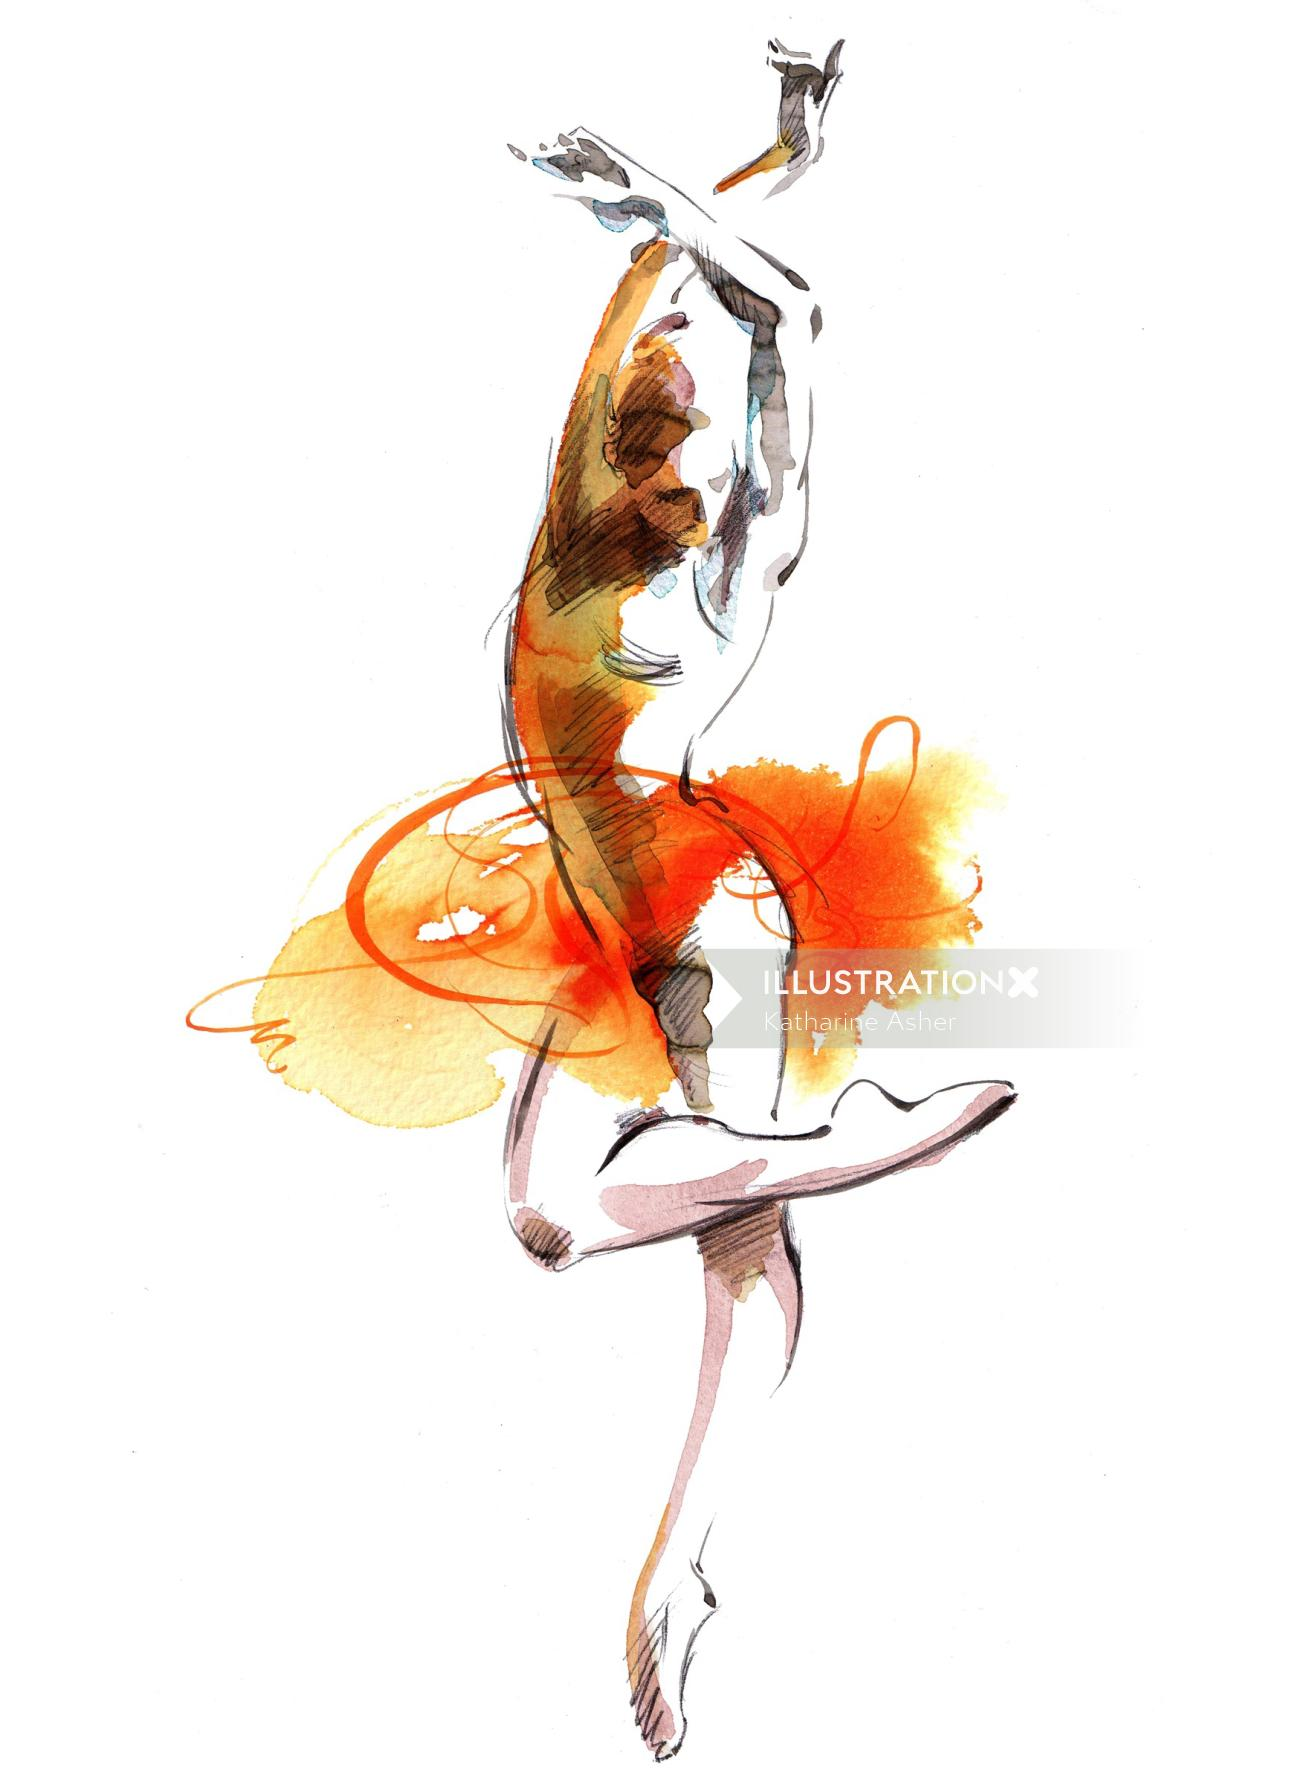 Woman dance illustration by Katharine Asher